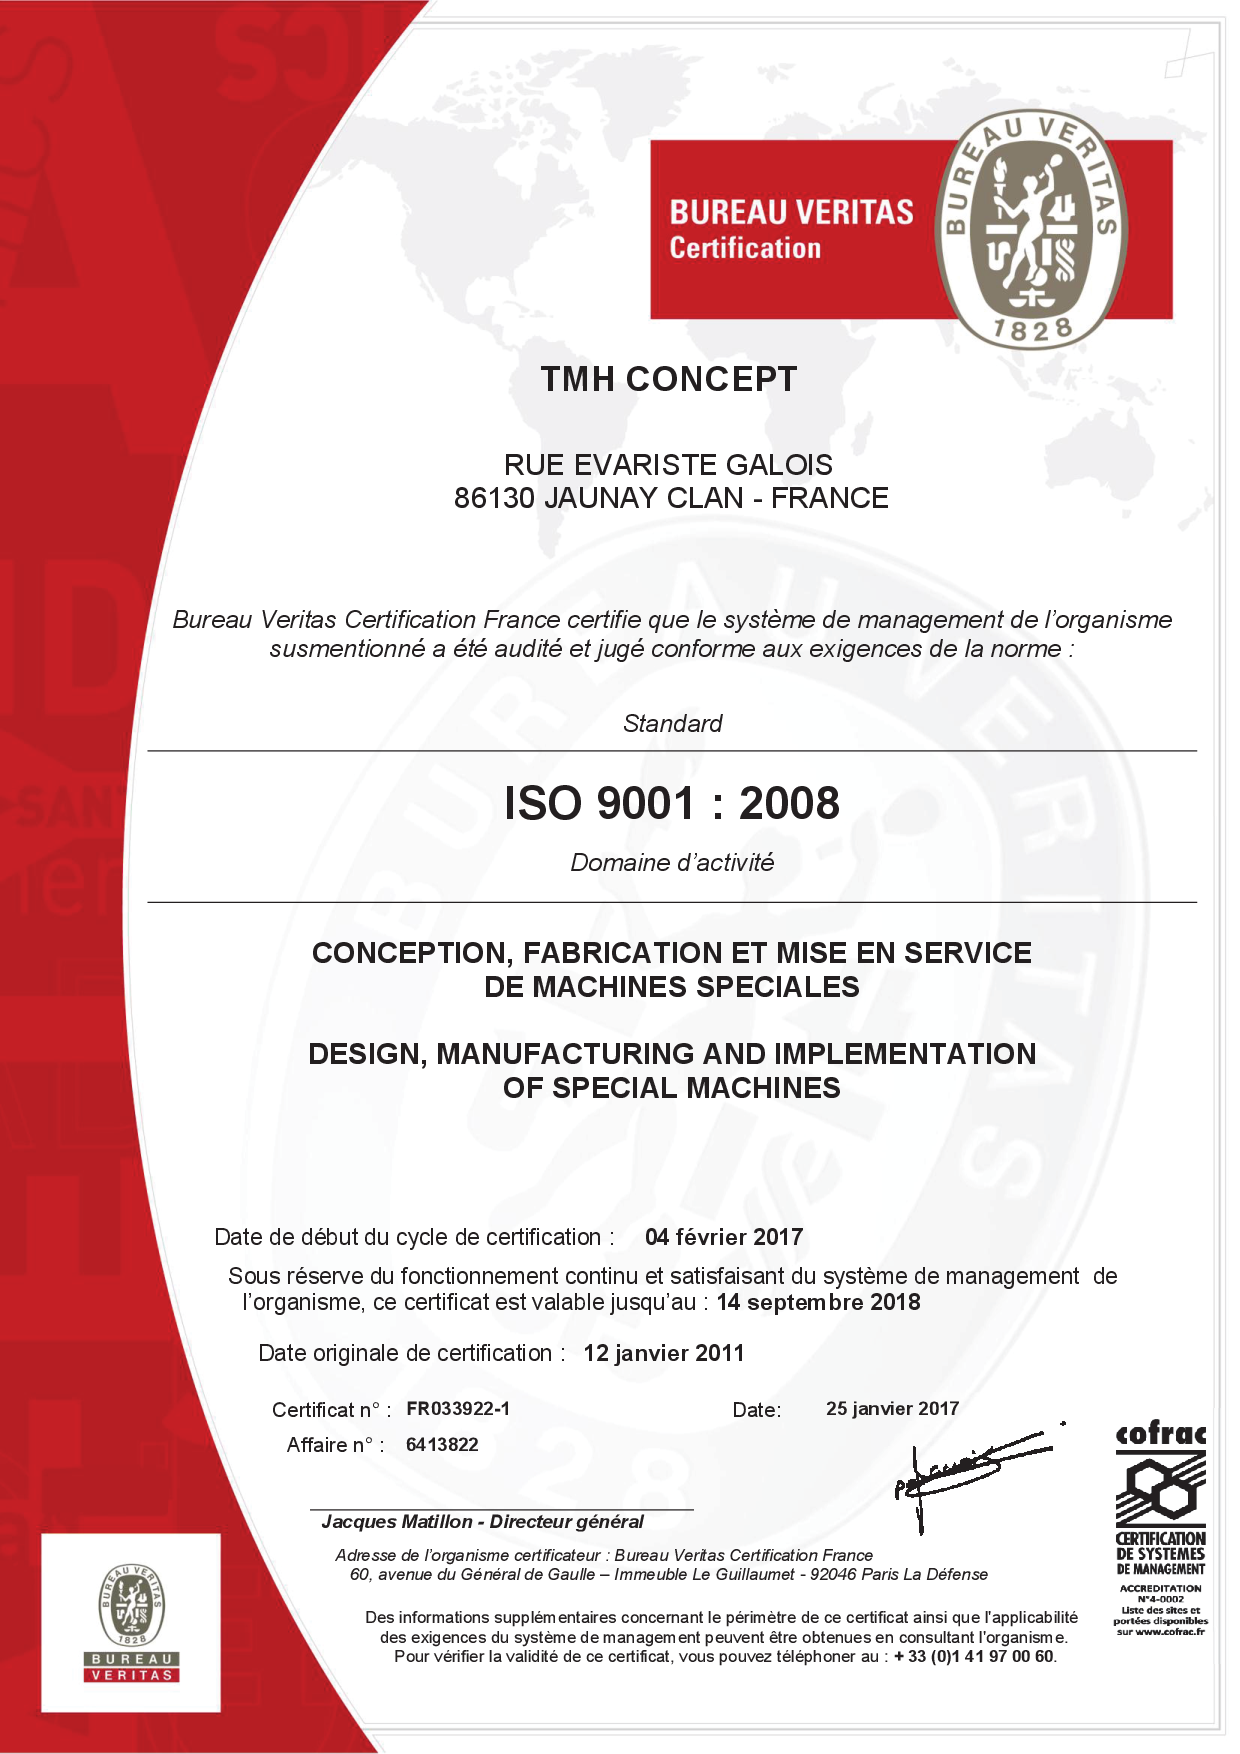 Certificat ISO 9001 TMH-concept